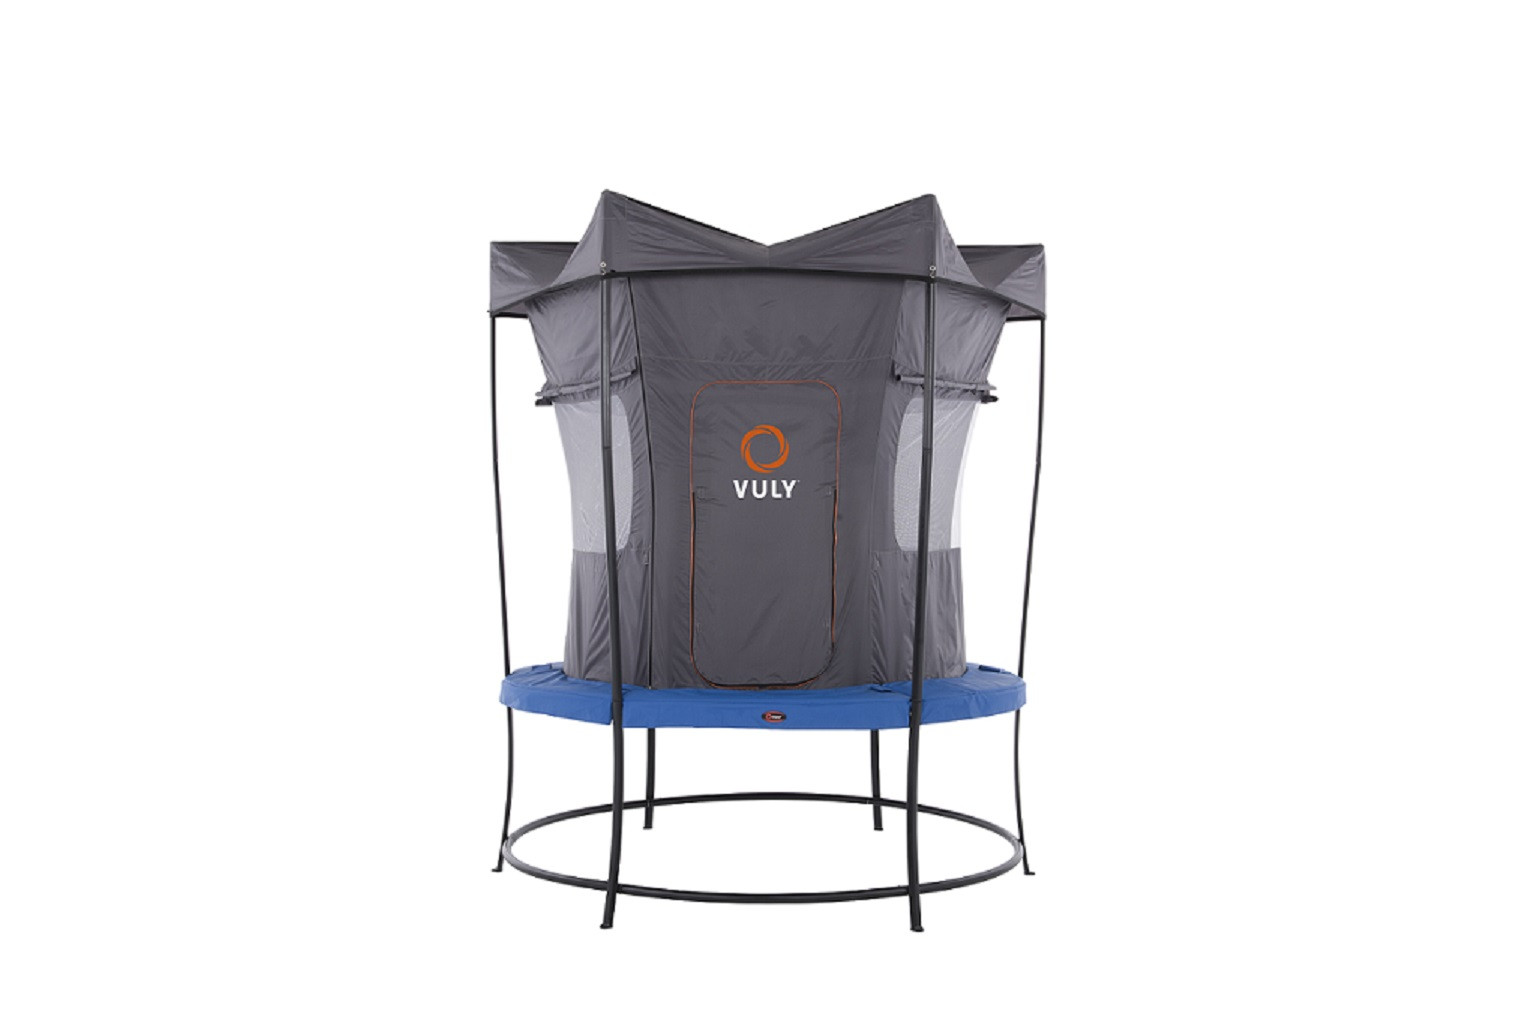 Vuly2-8ft-Trampoline-with-Net-&-Tent